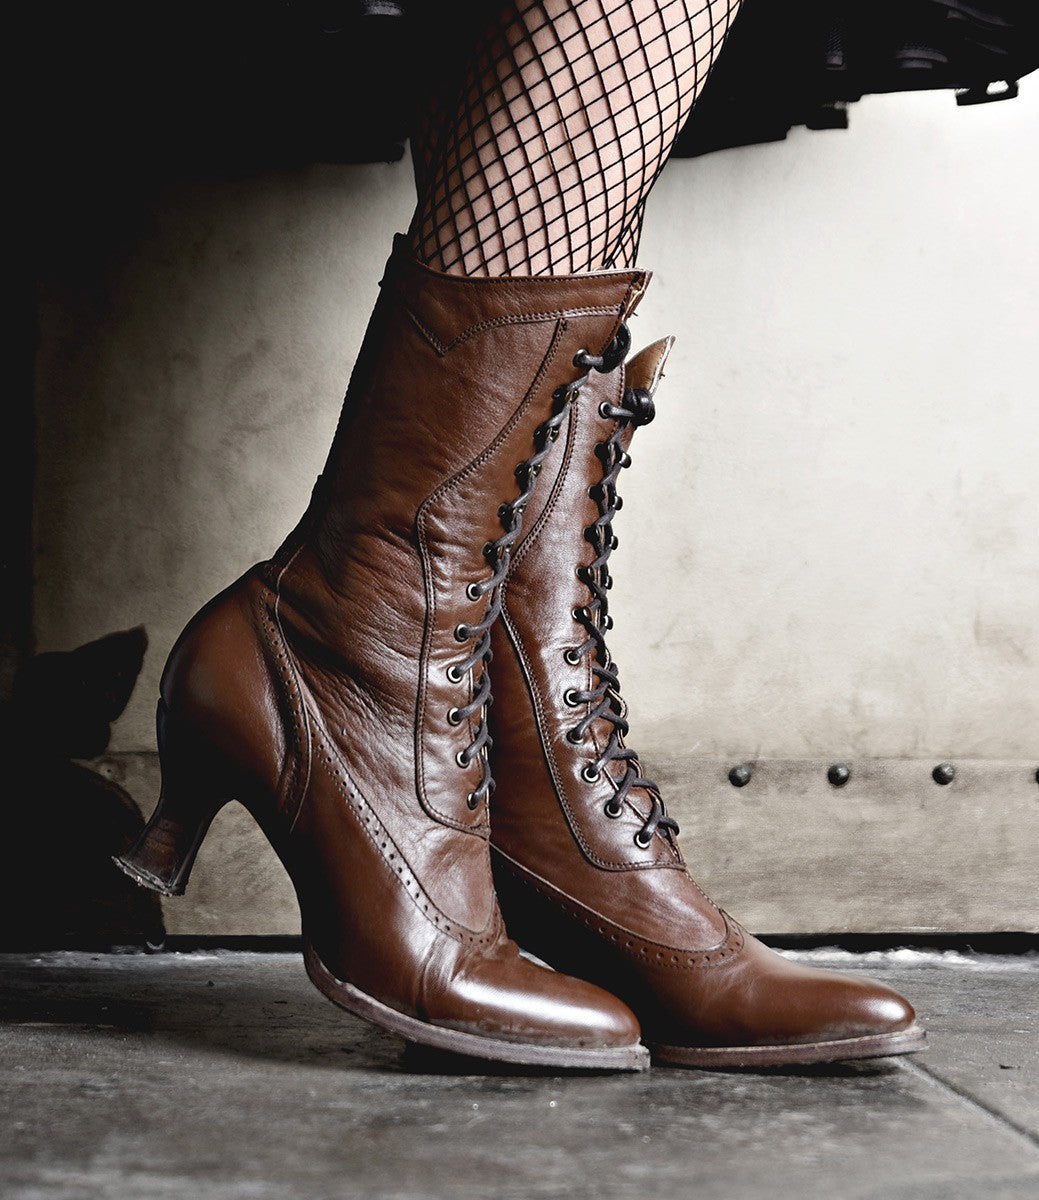 Vintage Boots, Retro Boots Modern Victorian Lace Up Leather Boots in Cognac $285.00 AT vintagedancer.com